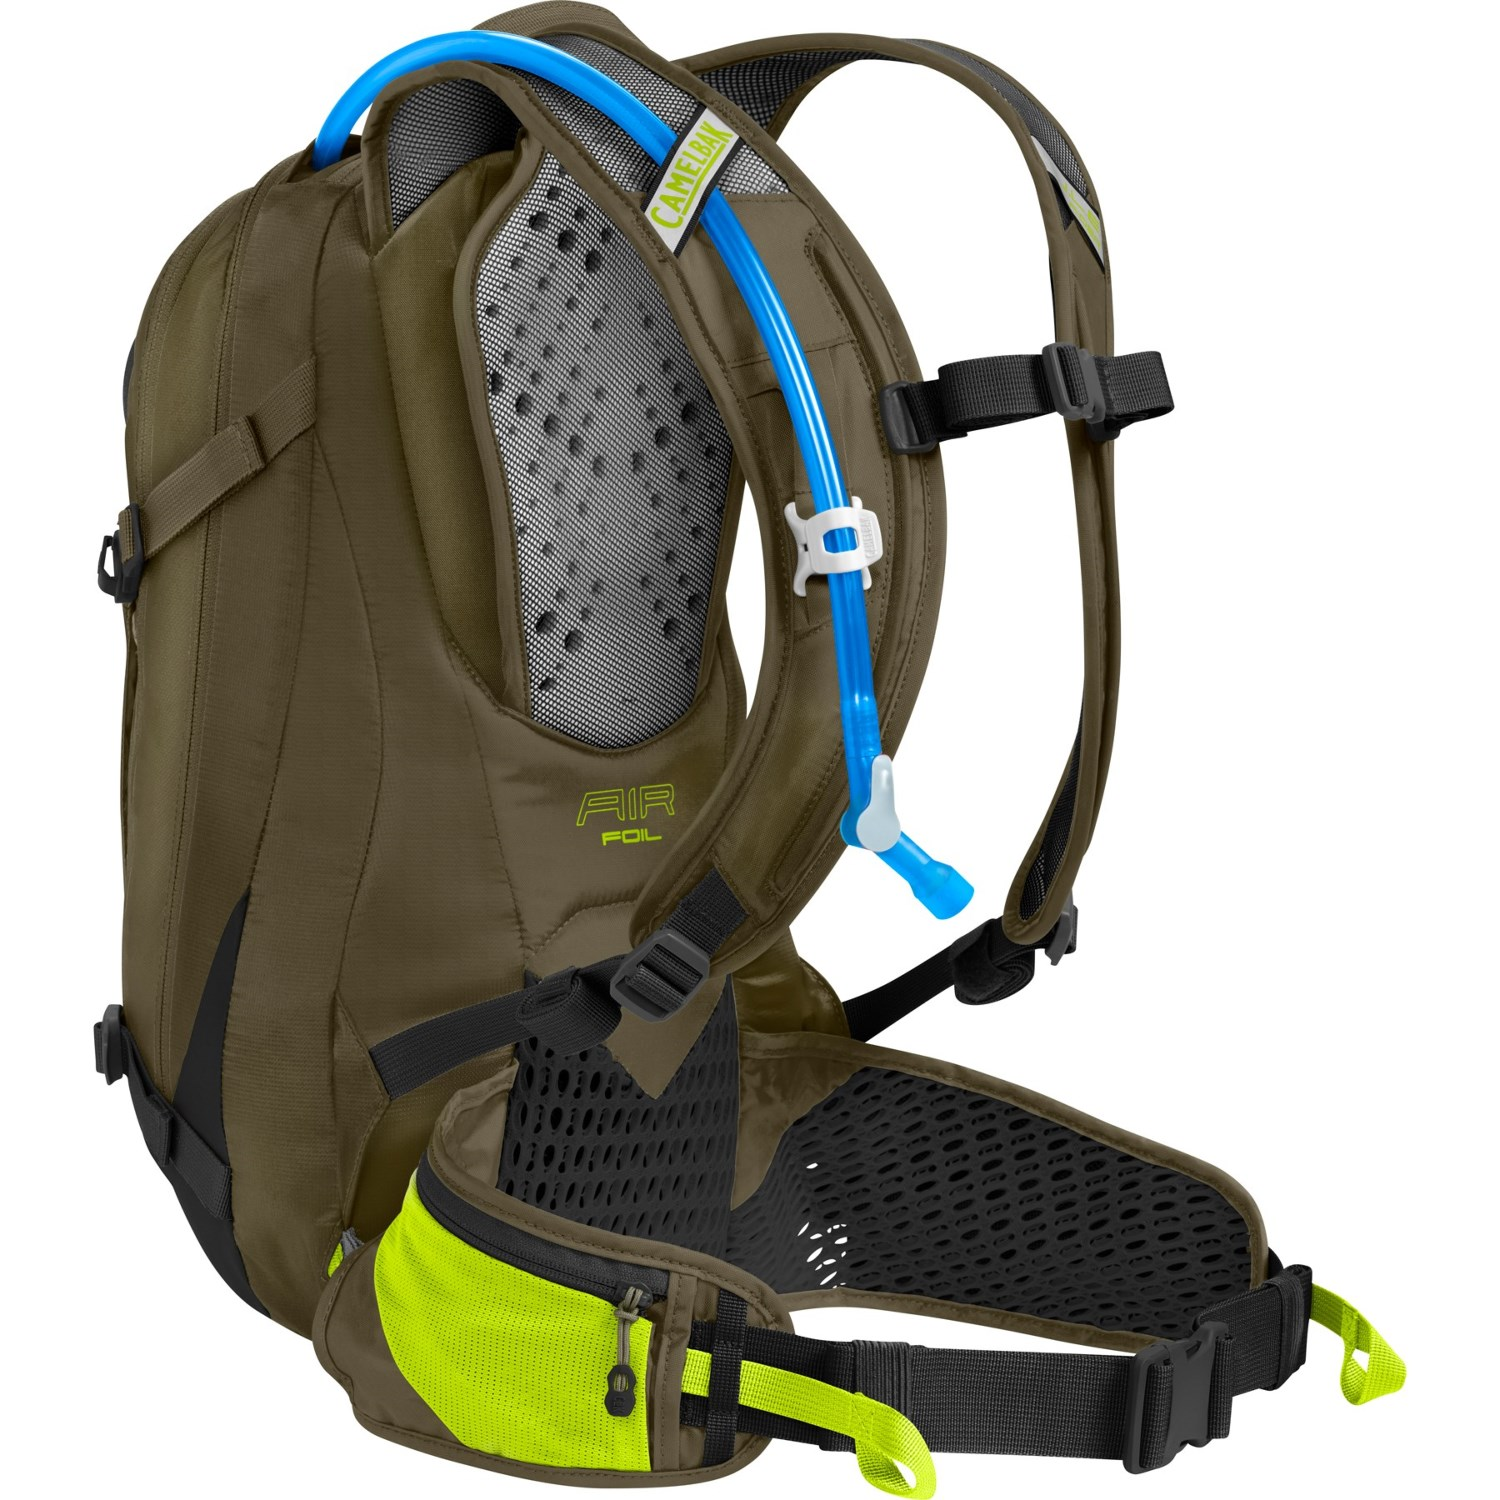 6afbdbb8257 CamelBak M.U.L.E LR 15L Hydration Backpack - 100 fl.oz. - Save 46%